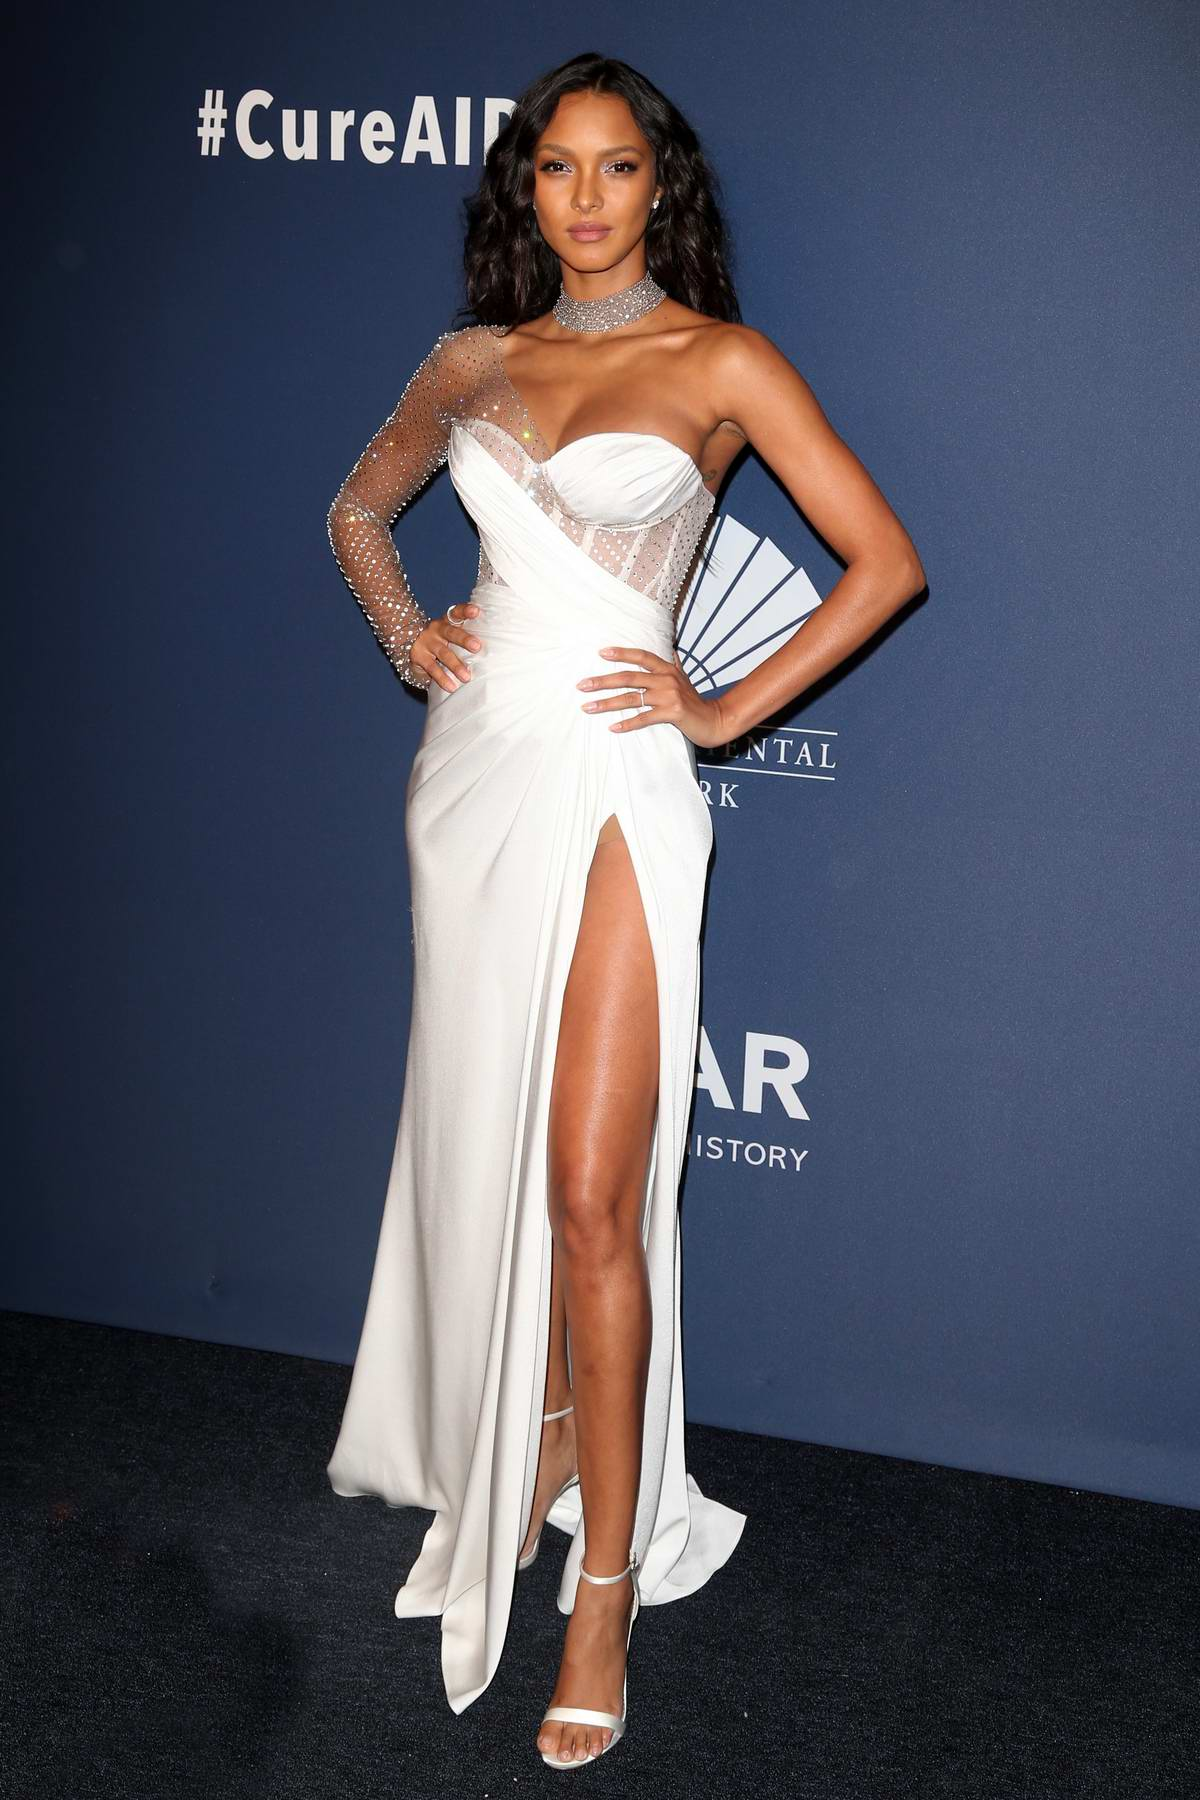 Lais Ribeiro attends the 22nd annual amfAR Gala Benefit for AIDS Research in New York City